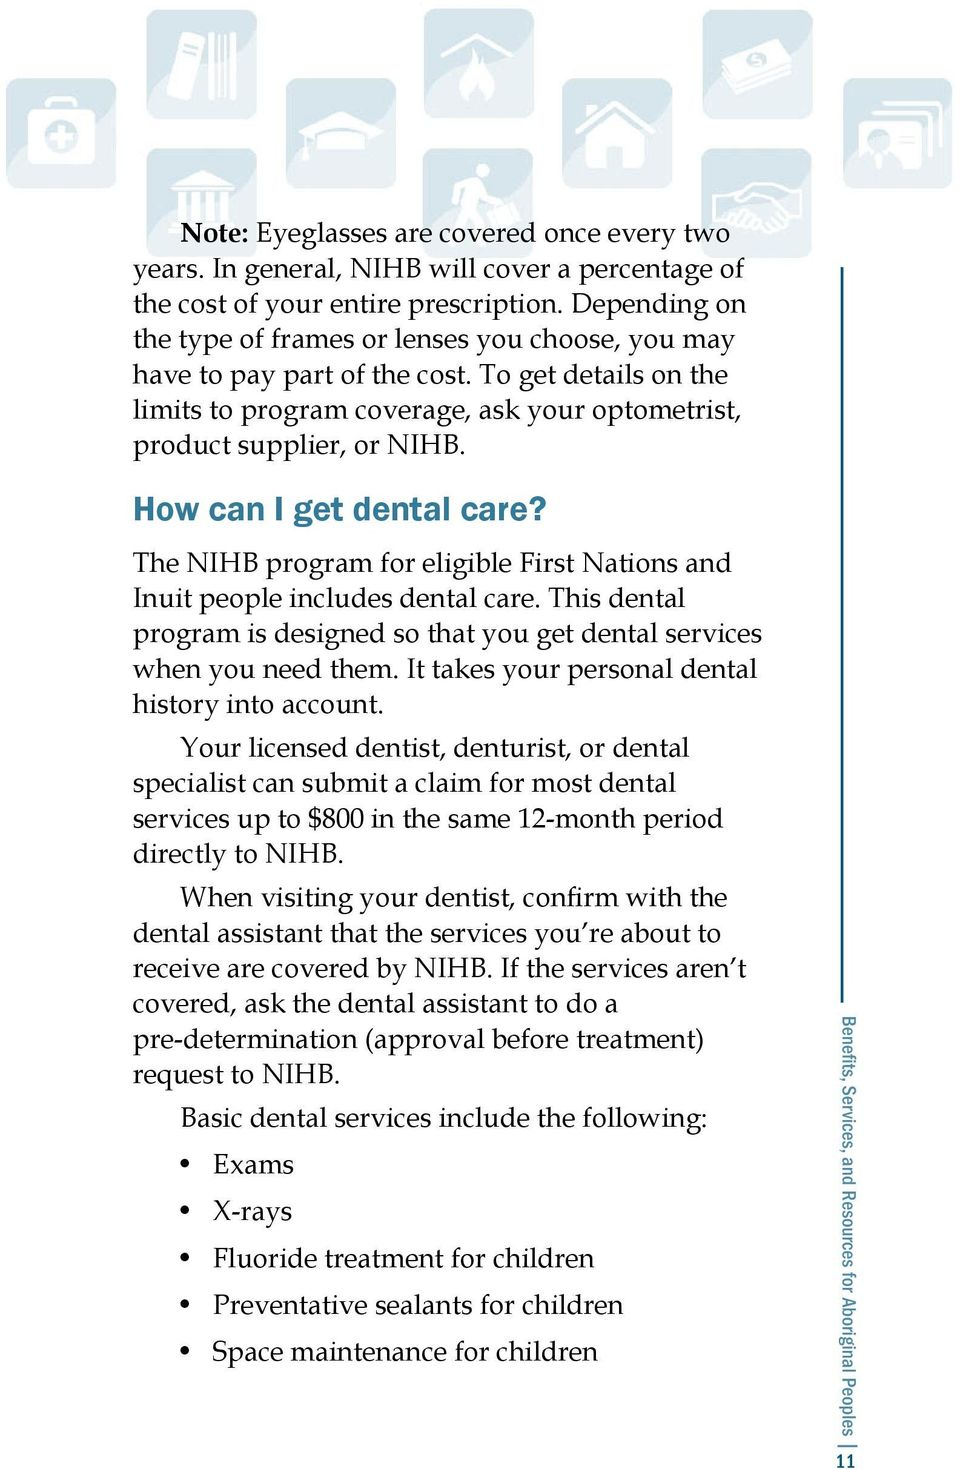 How can I get dental care? The NIHB program for eligible First Nations and Inuit people includes dental care. This dental program is designed so that you get dental services when you need them.